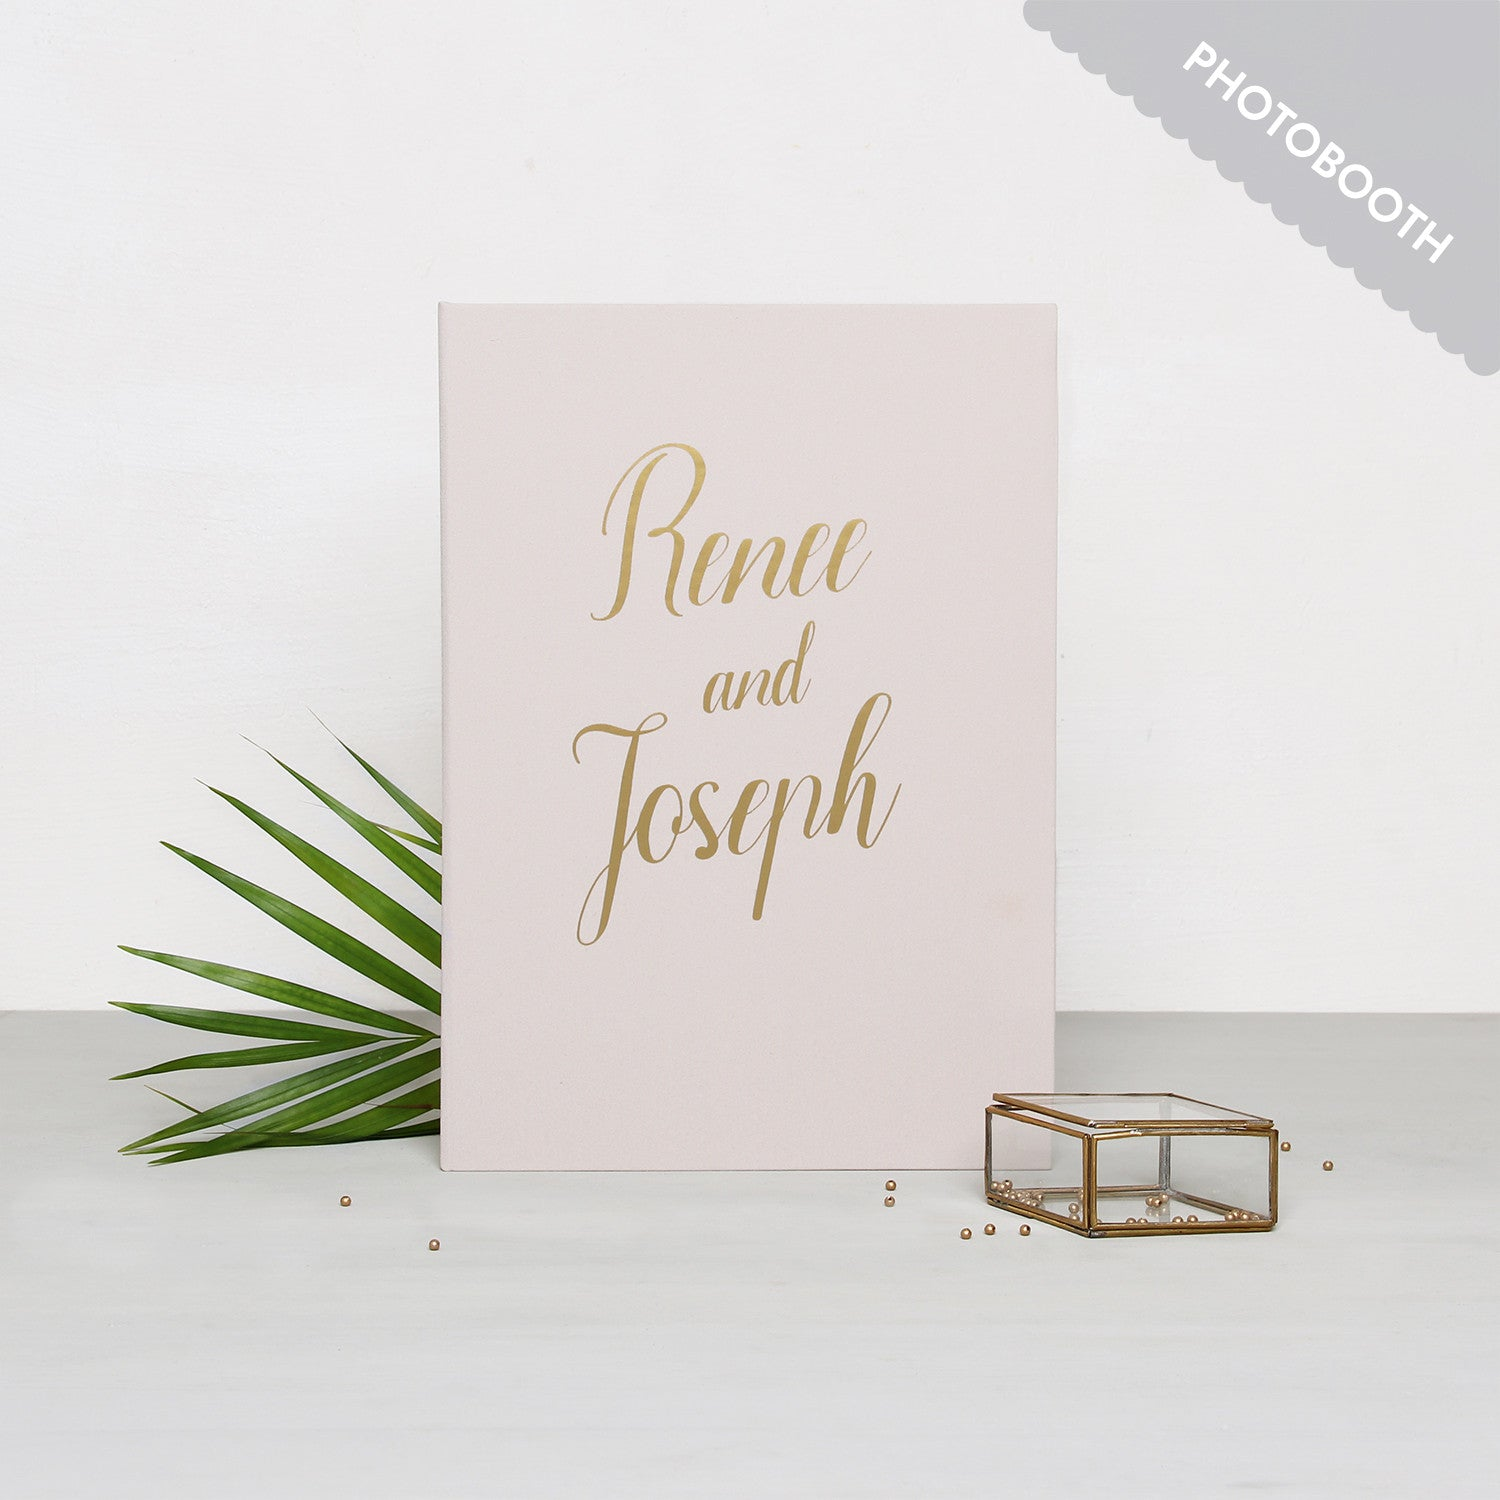 Photo Booth Wedding Guest Book Album Cream with Gold Lettering - Liumy